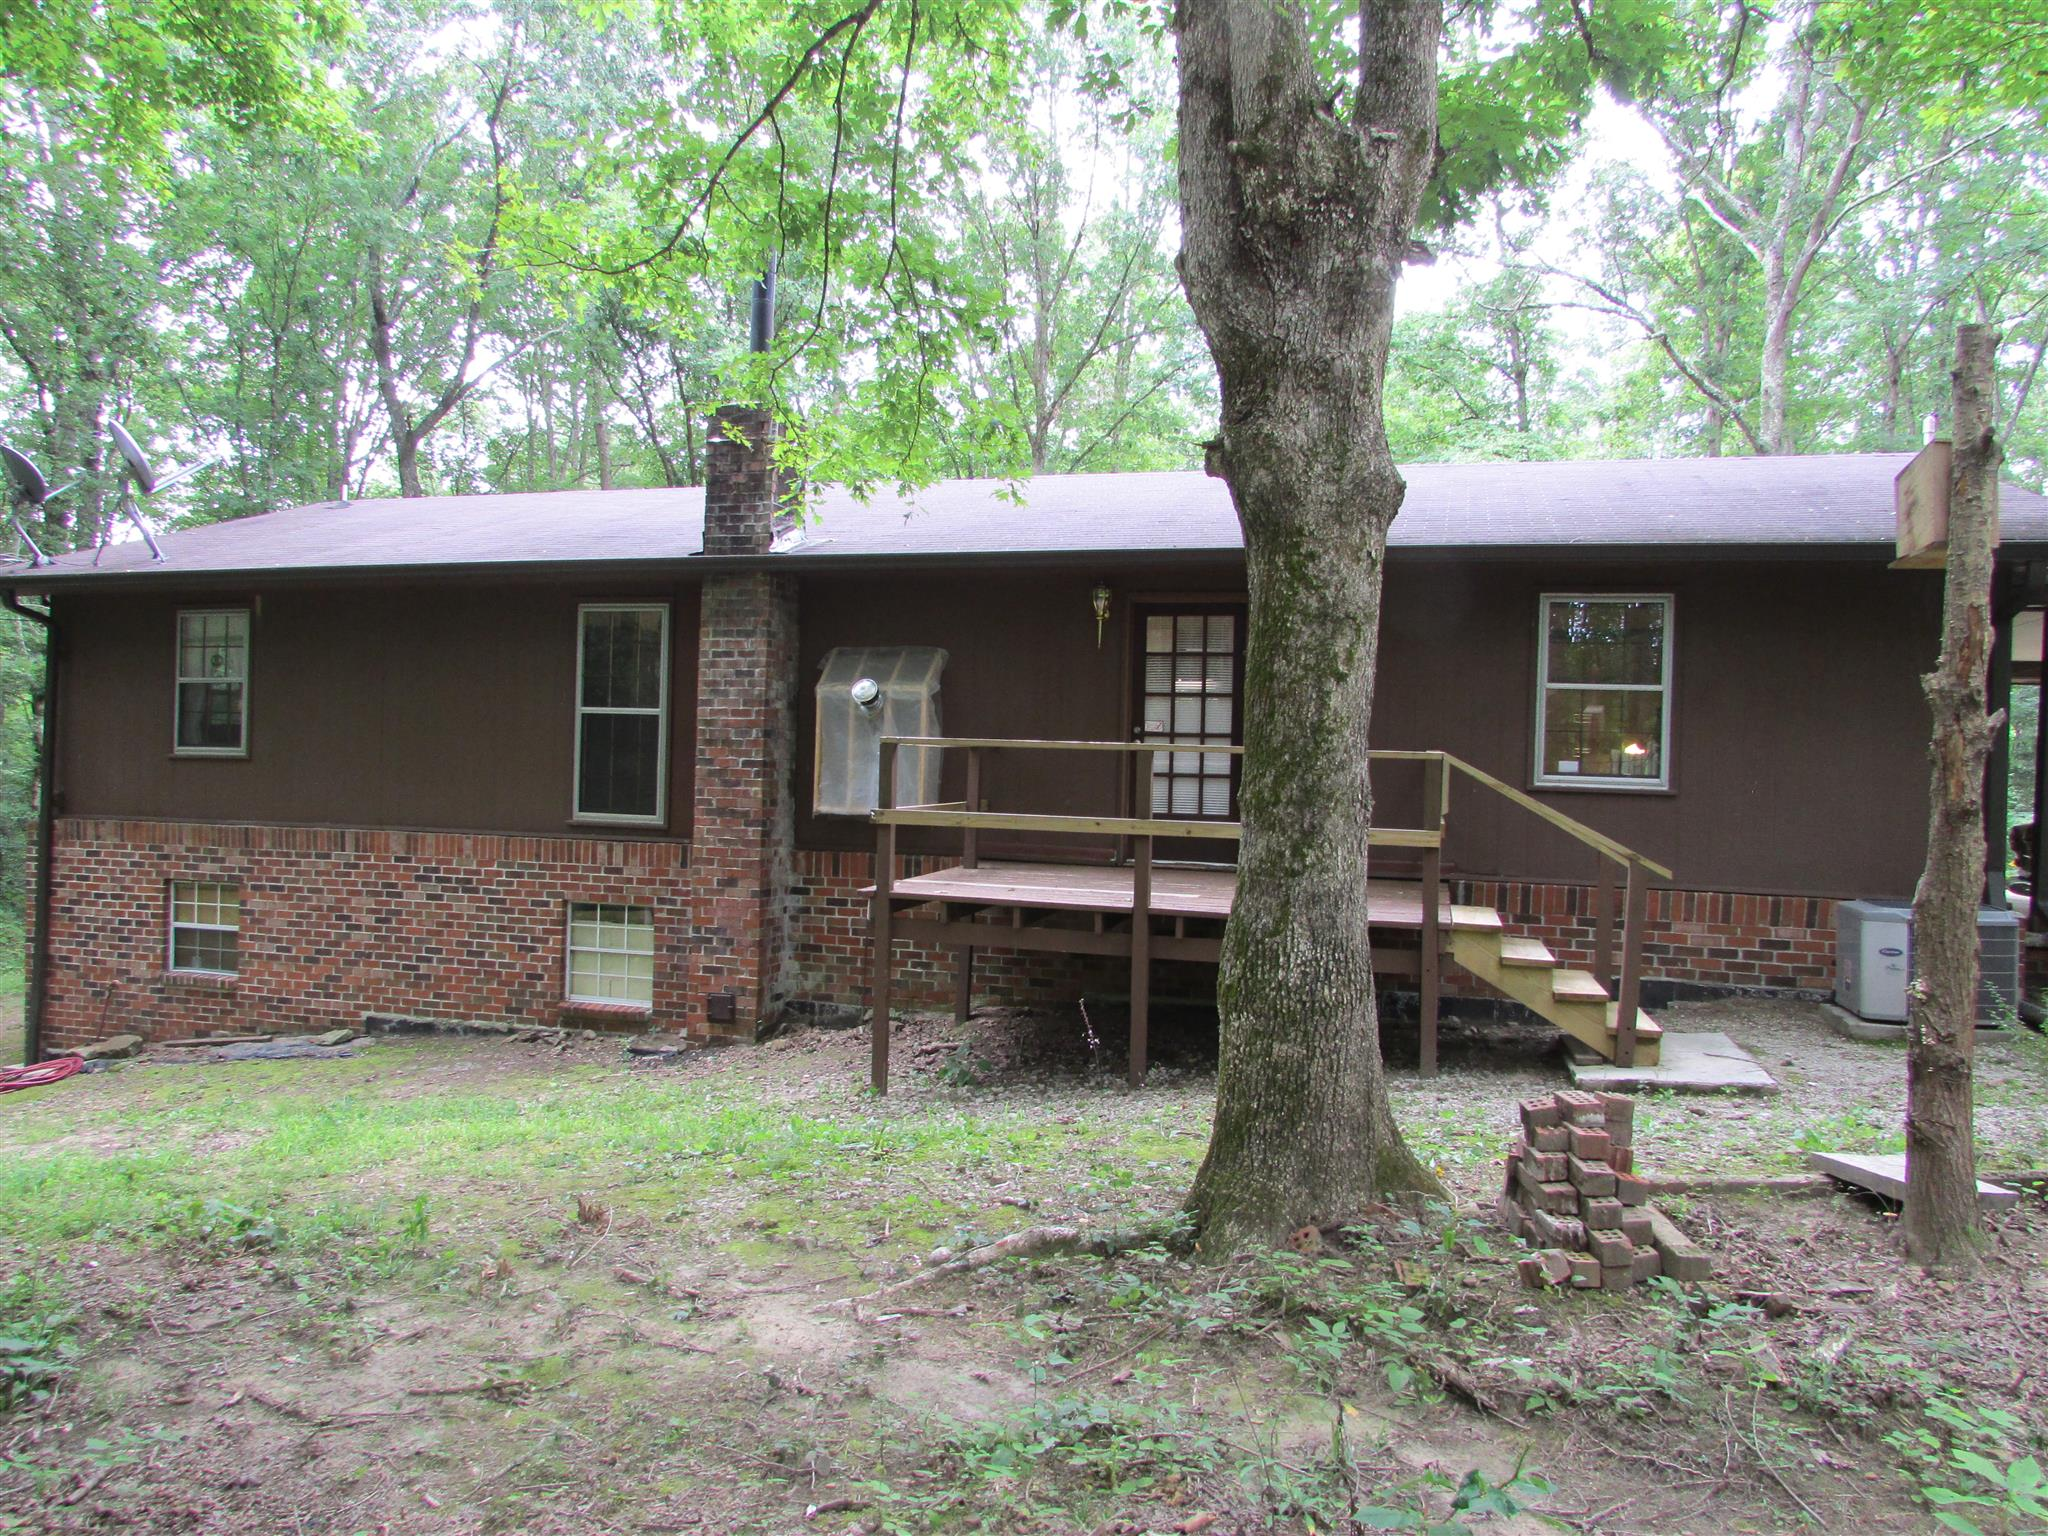 920 Canyon Dr, Altamont, TN 37301 - Altamont, TN real estate listing